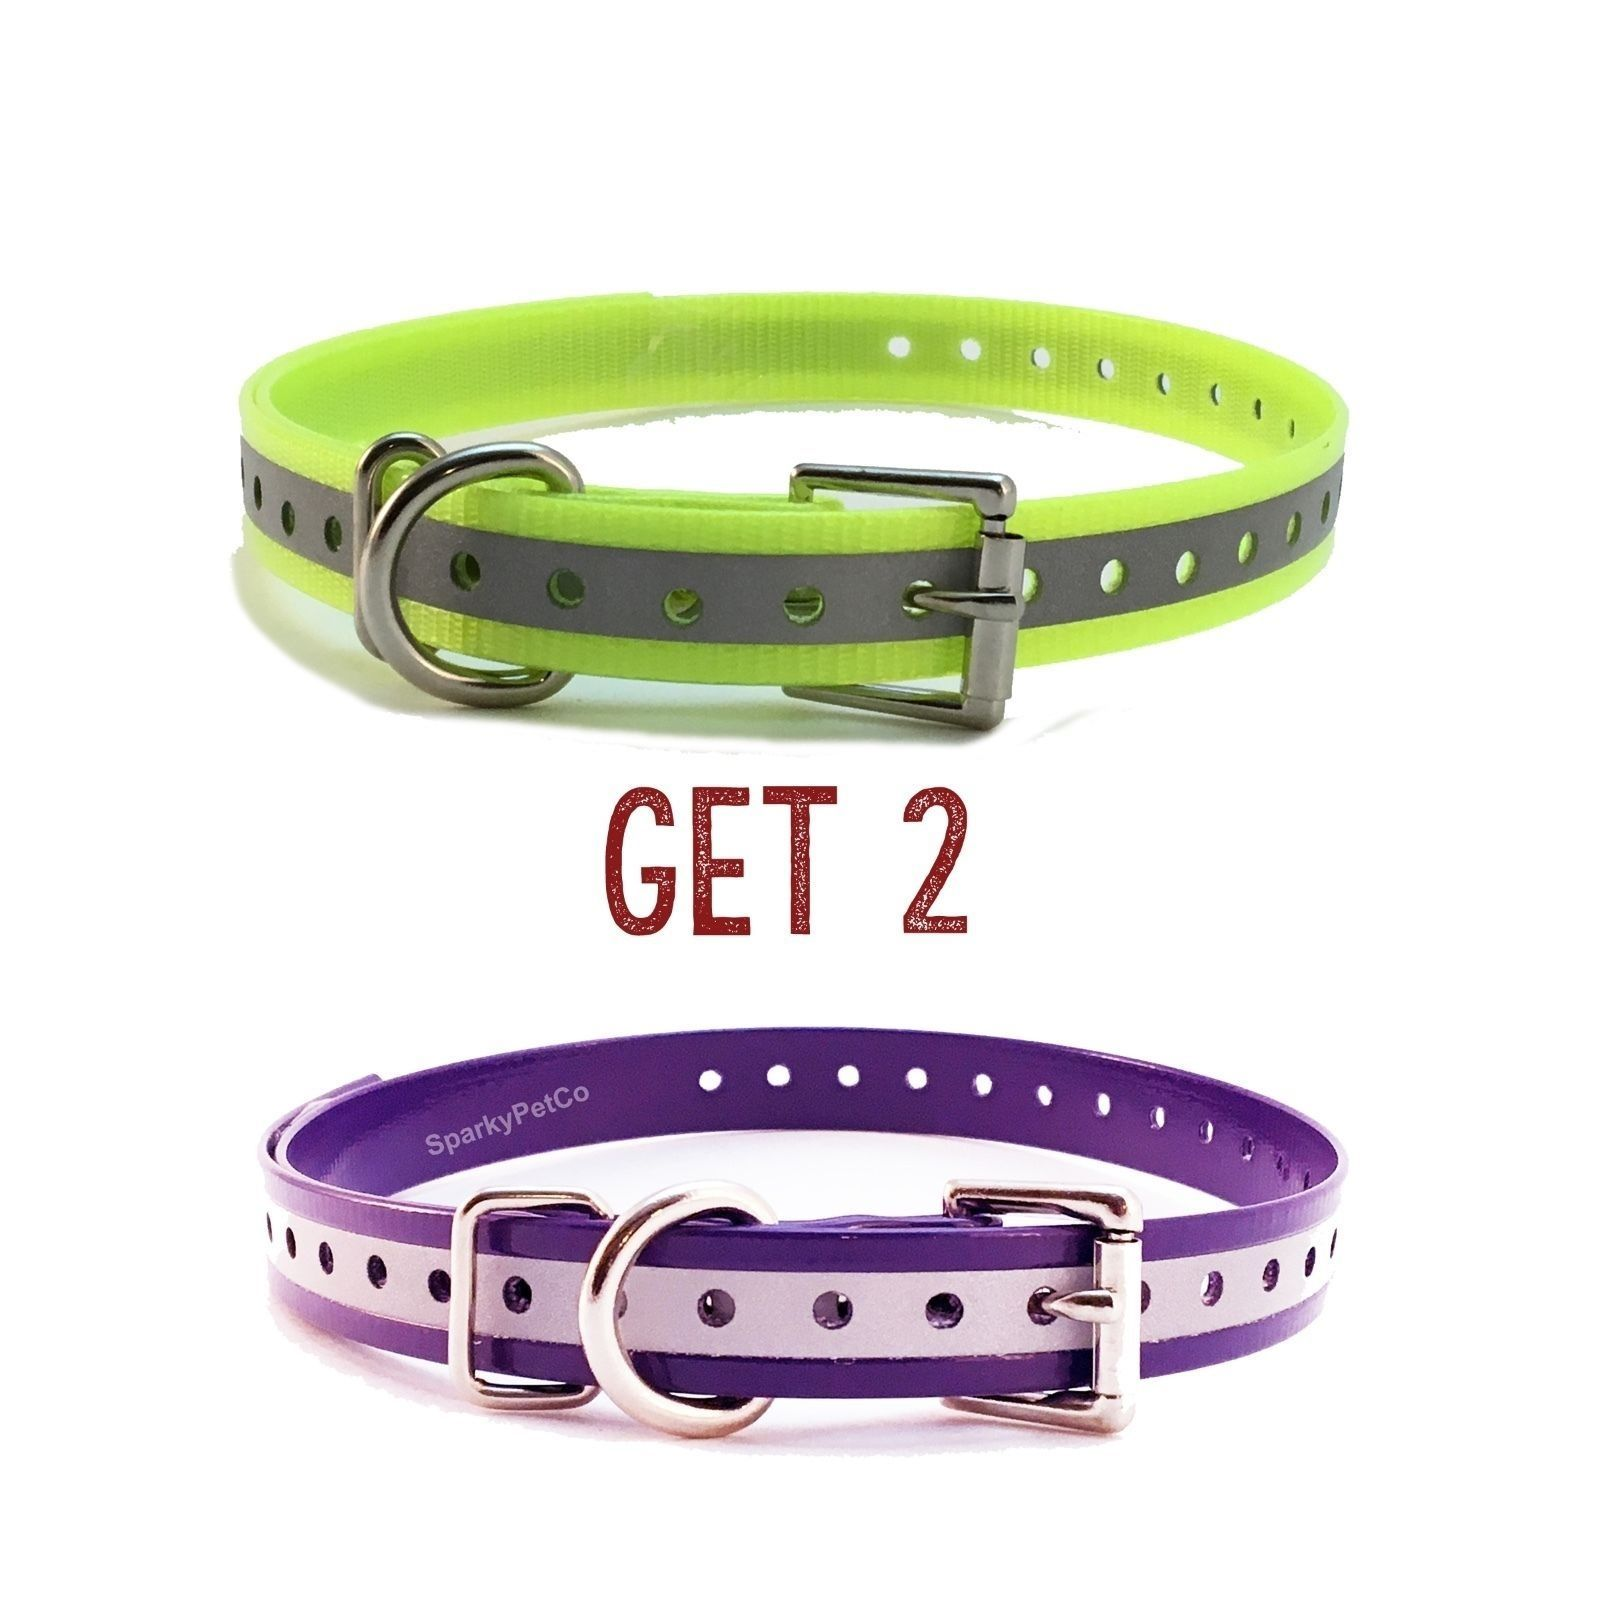 "Sparky PetCo 3/4"" Purple Yellow Reflective Roller Buckle High Flex Dog Straps-2"